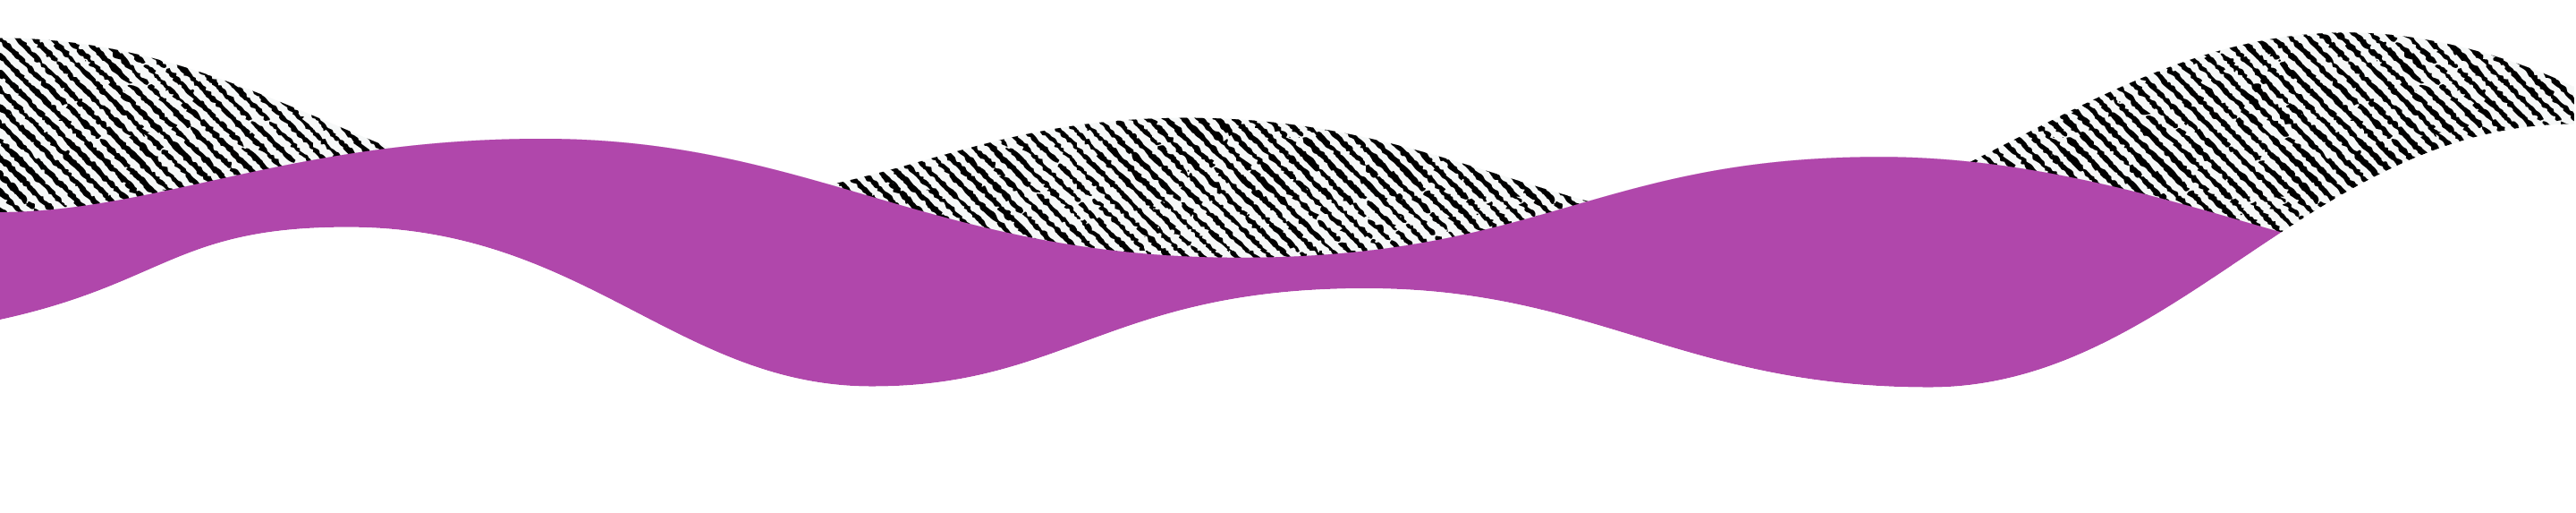 AboutPageHeader_Purple1.png